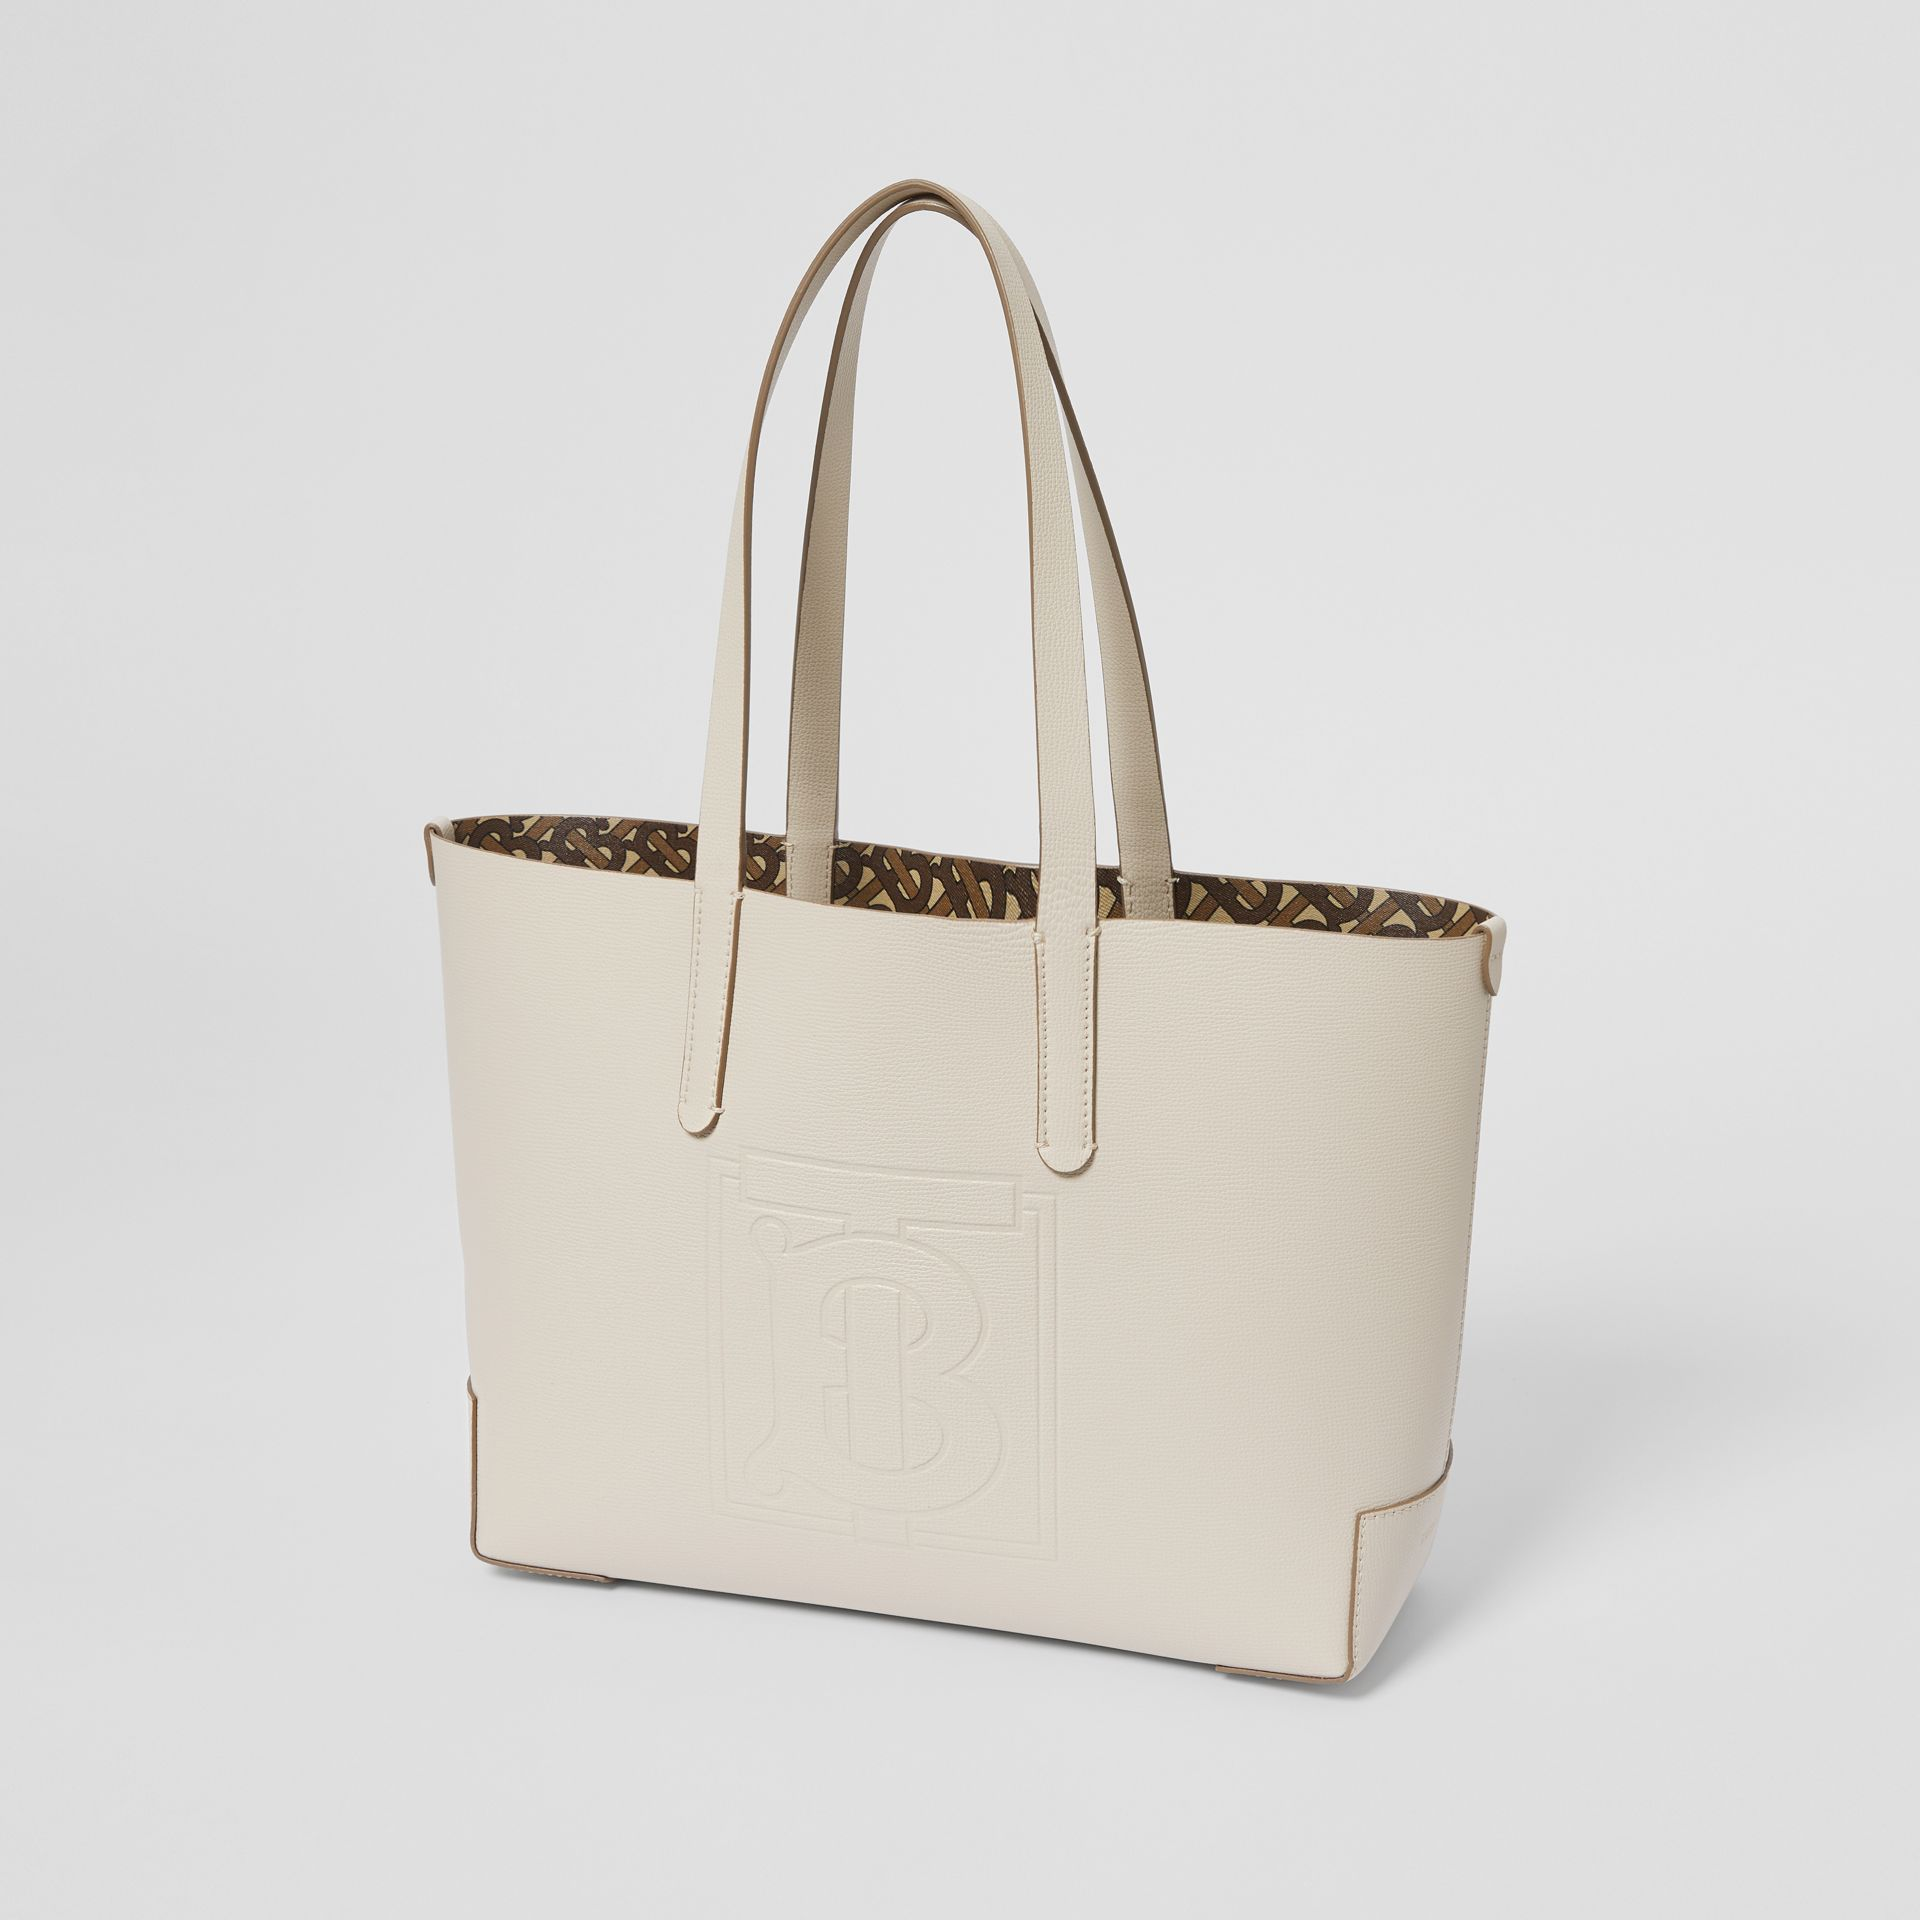 Embossed Monogram Motif Leather Tote in Limestone - Women | Burberry - gallery image 3